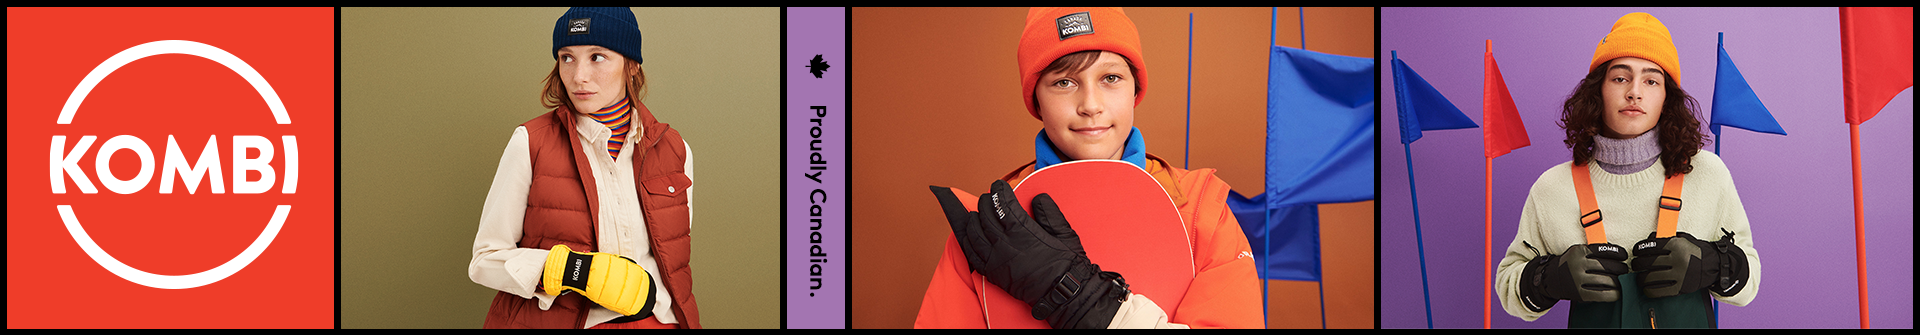 Shop Kombi Winter Jackets, Pants, Outerwear, and Kids Winter Toques at your local Source For Sports winter clothing store